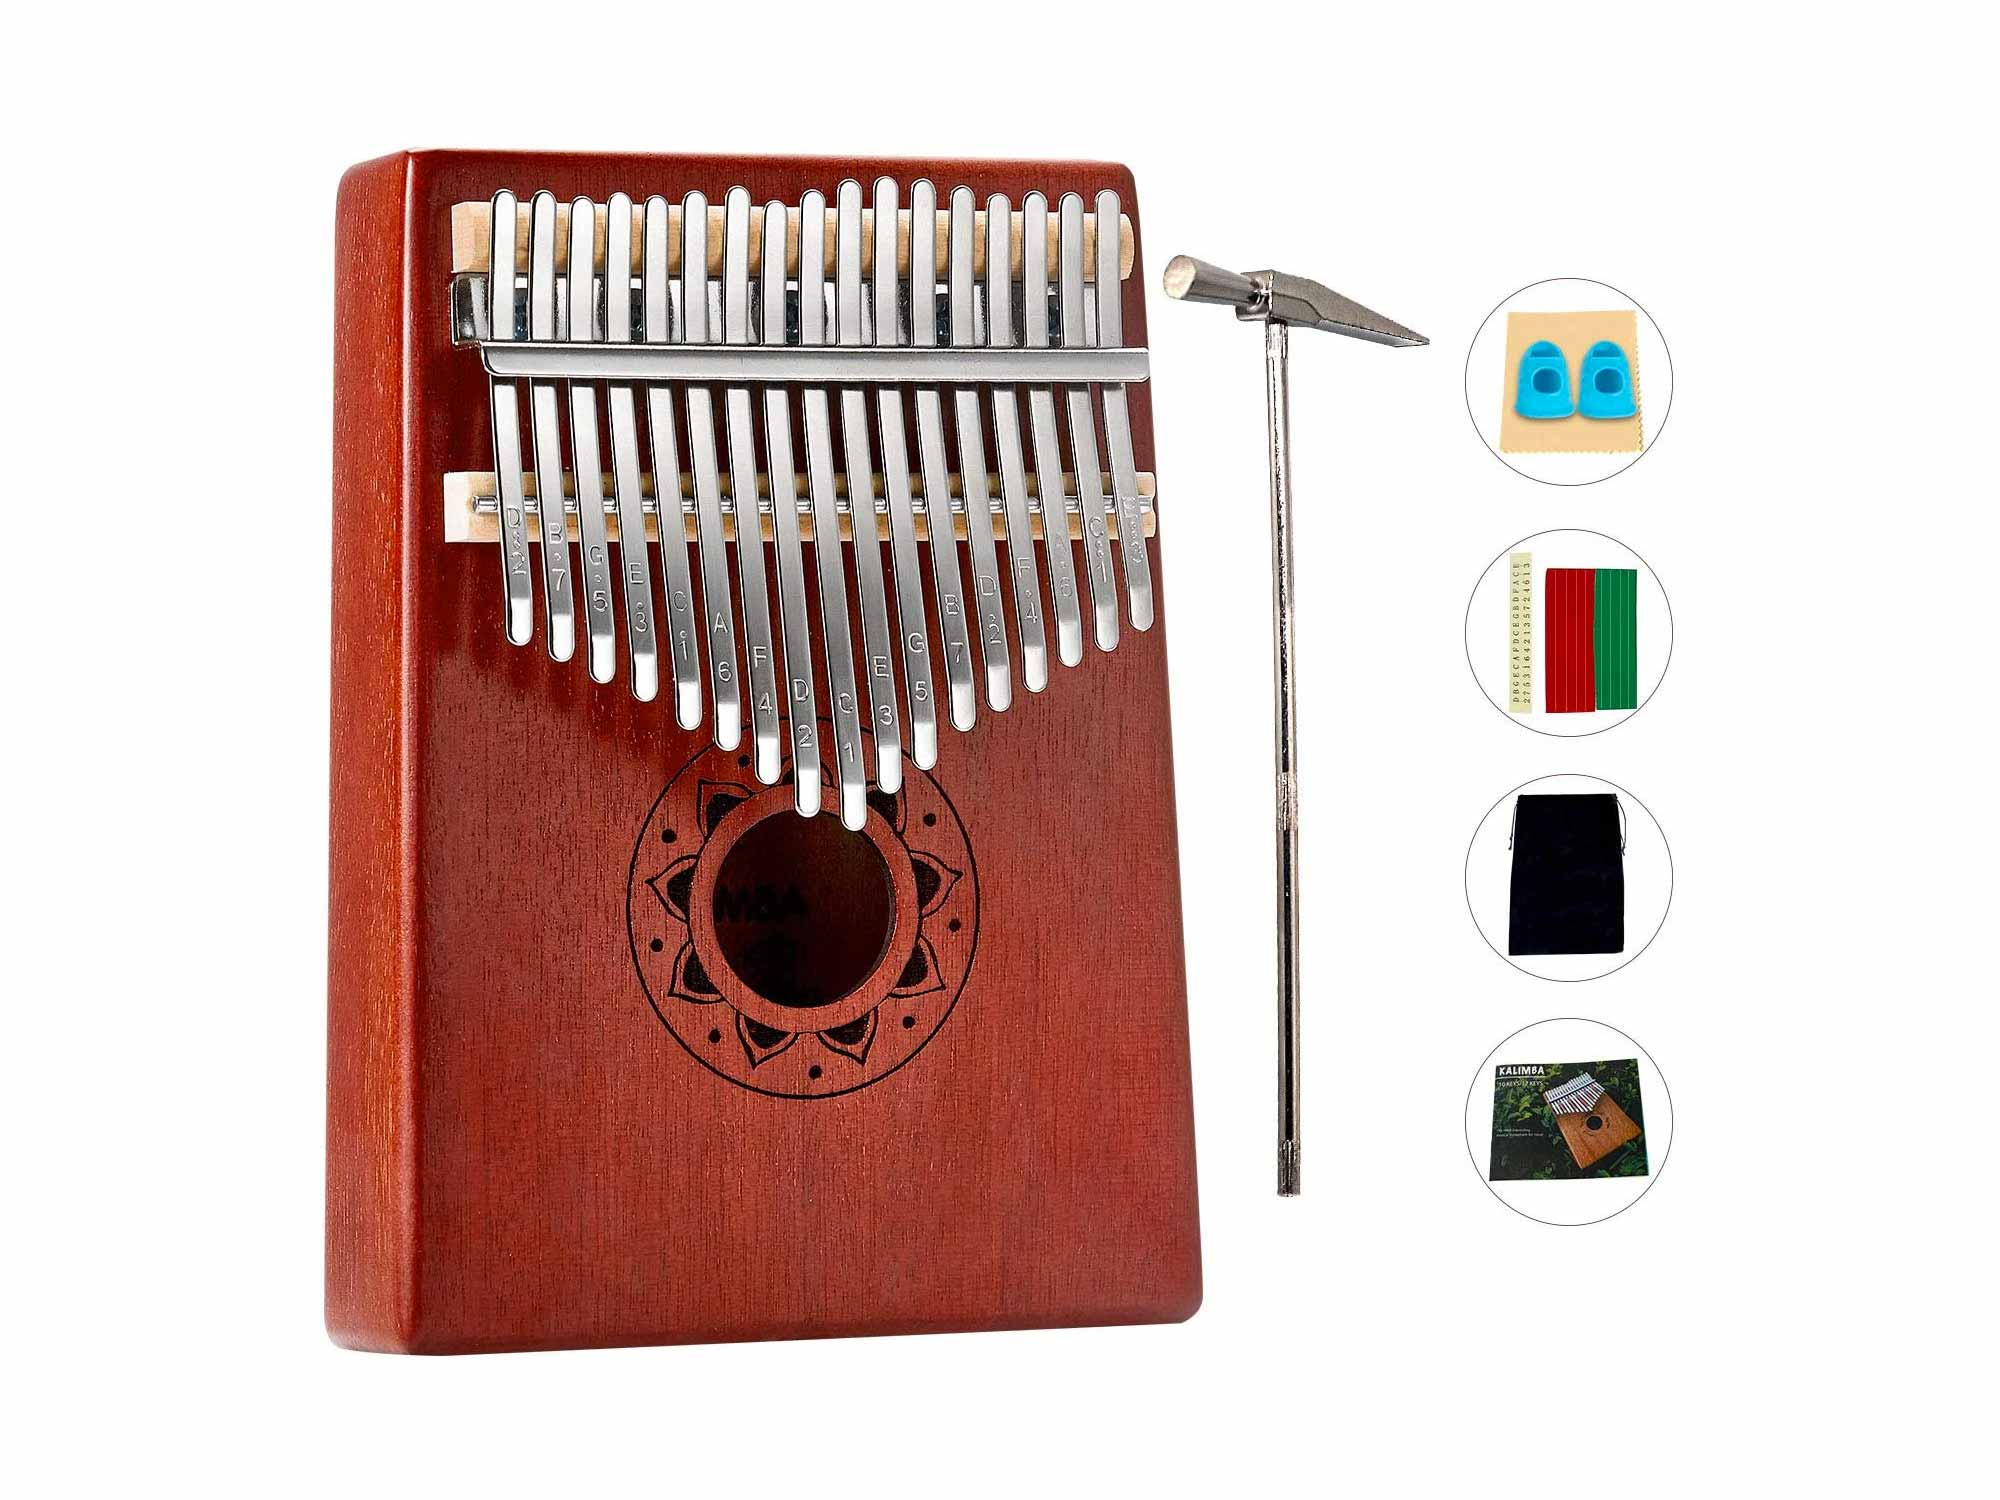 Kalimba 17 Keys Thumb Piano,Portable Wood Finger Piano With Tune Hammer Instruction Book Accessory,Music Instrument Gift For Beginners Kids Adult